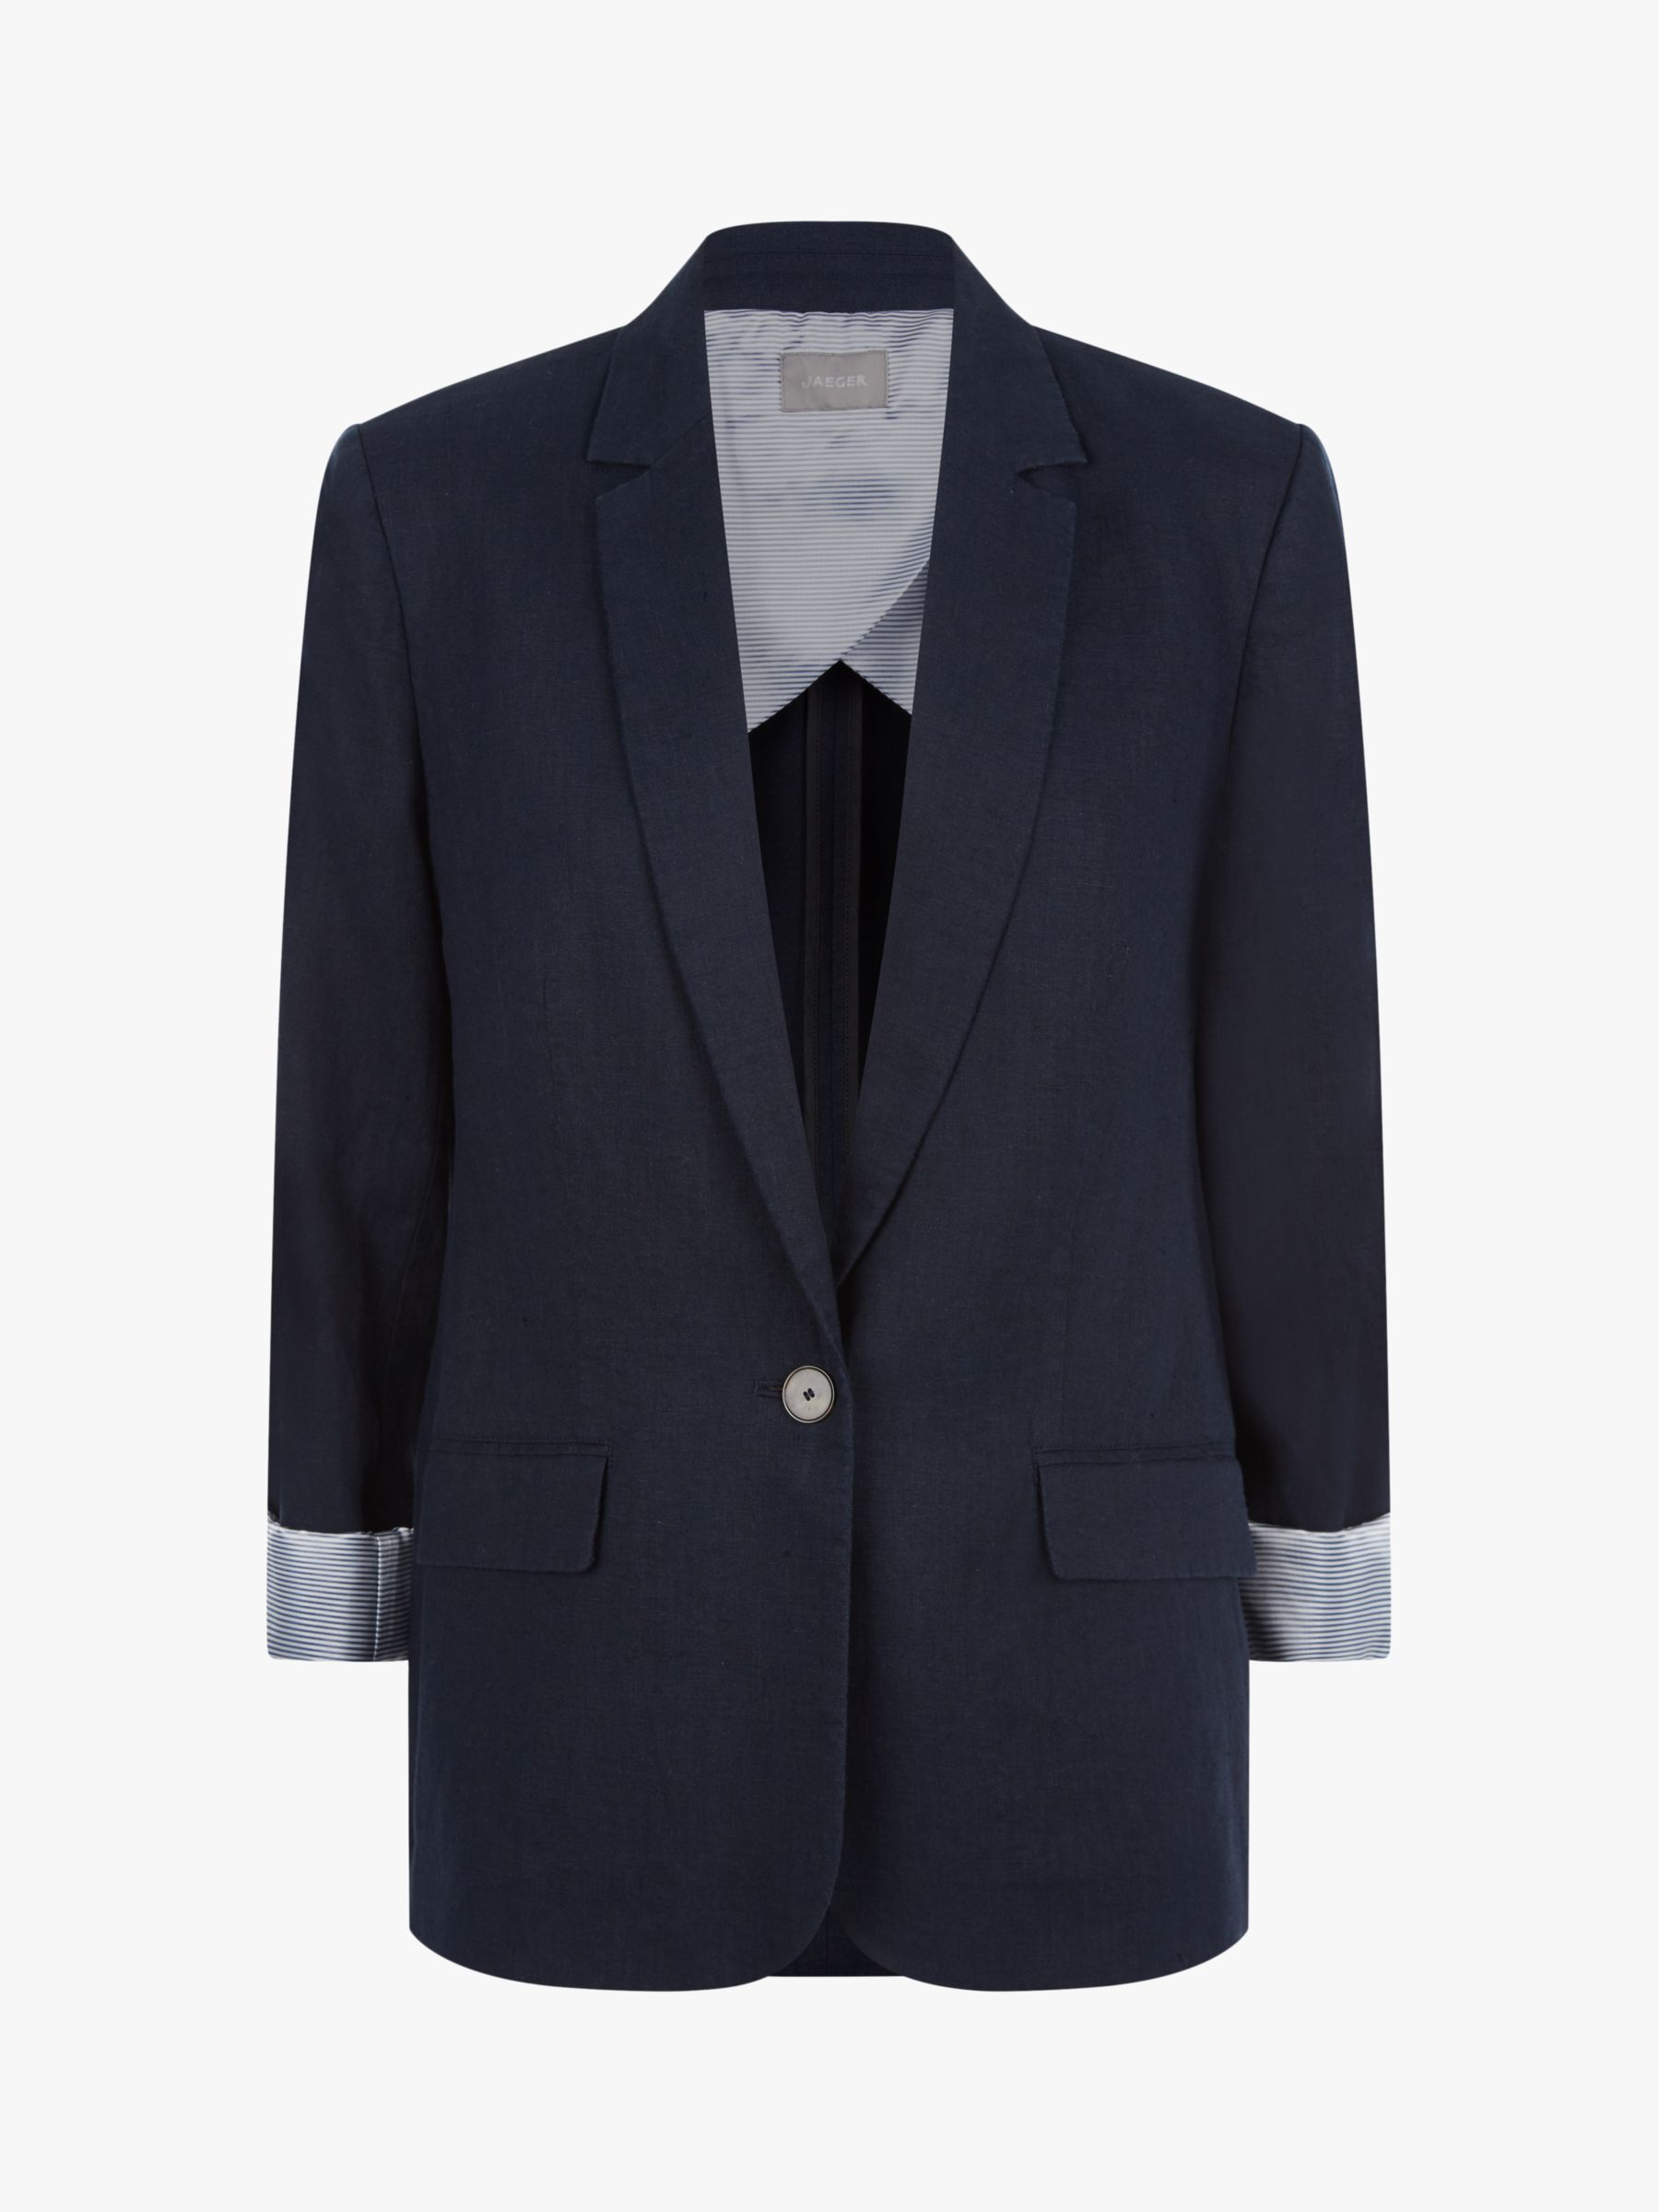 Jaeger Jaeger Single Breasted Linen Blazer, Dark Blue